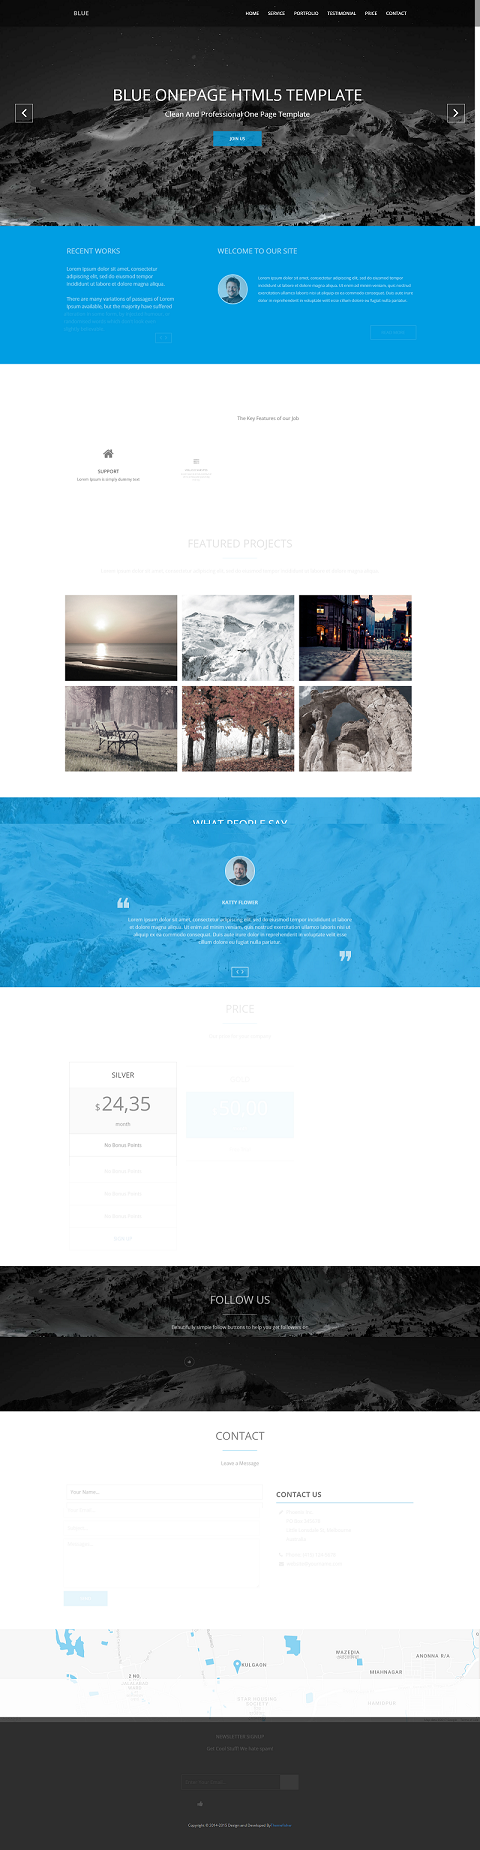 Blue One Page Website Template Html5 Responsive Free